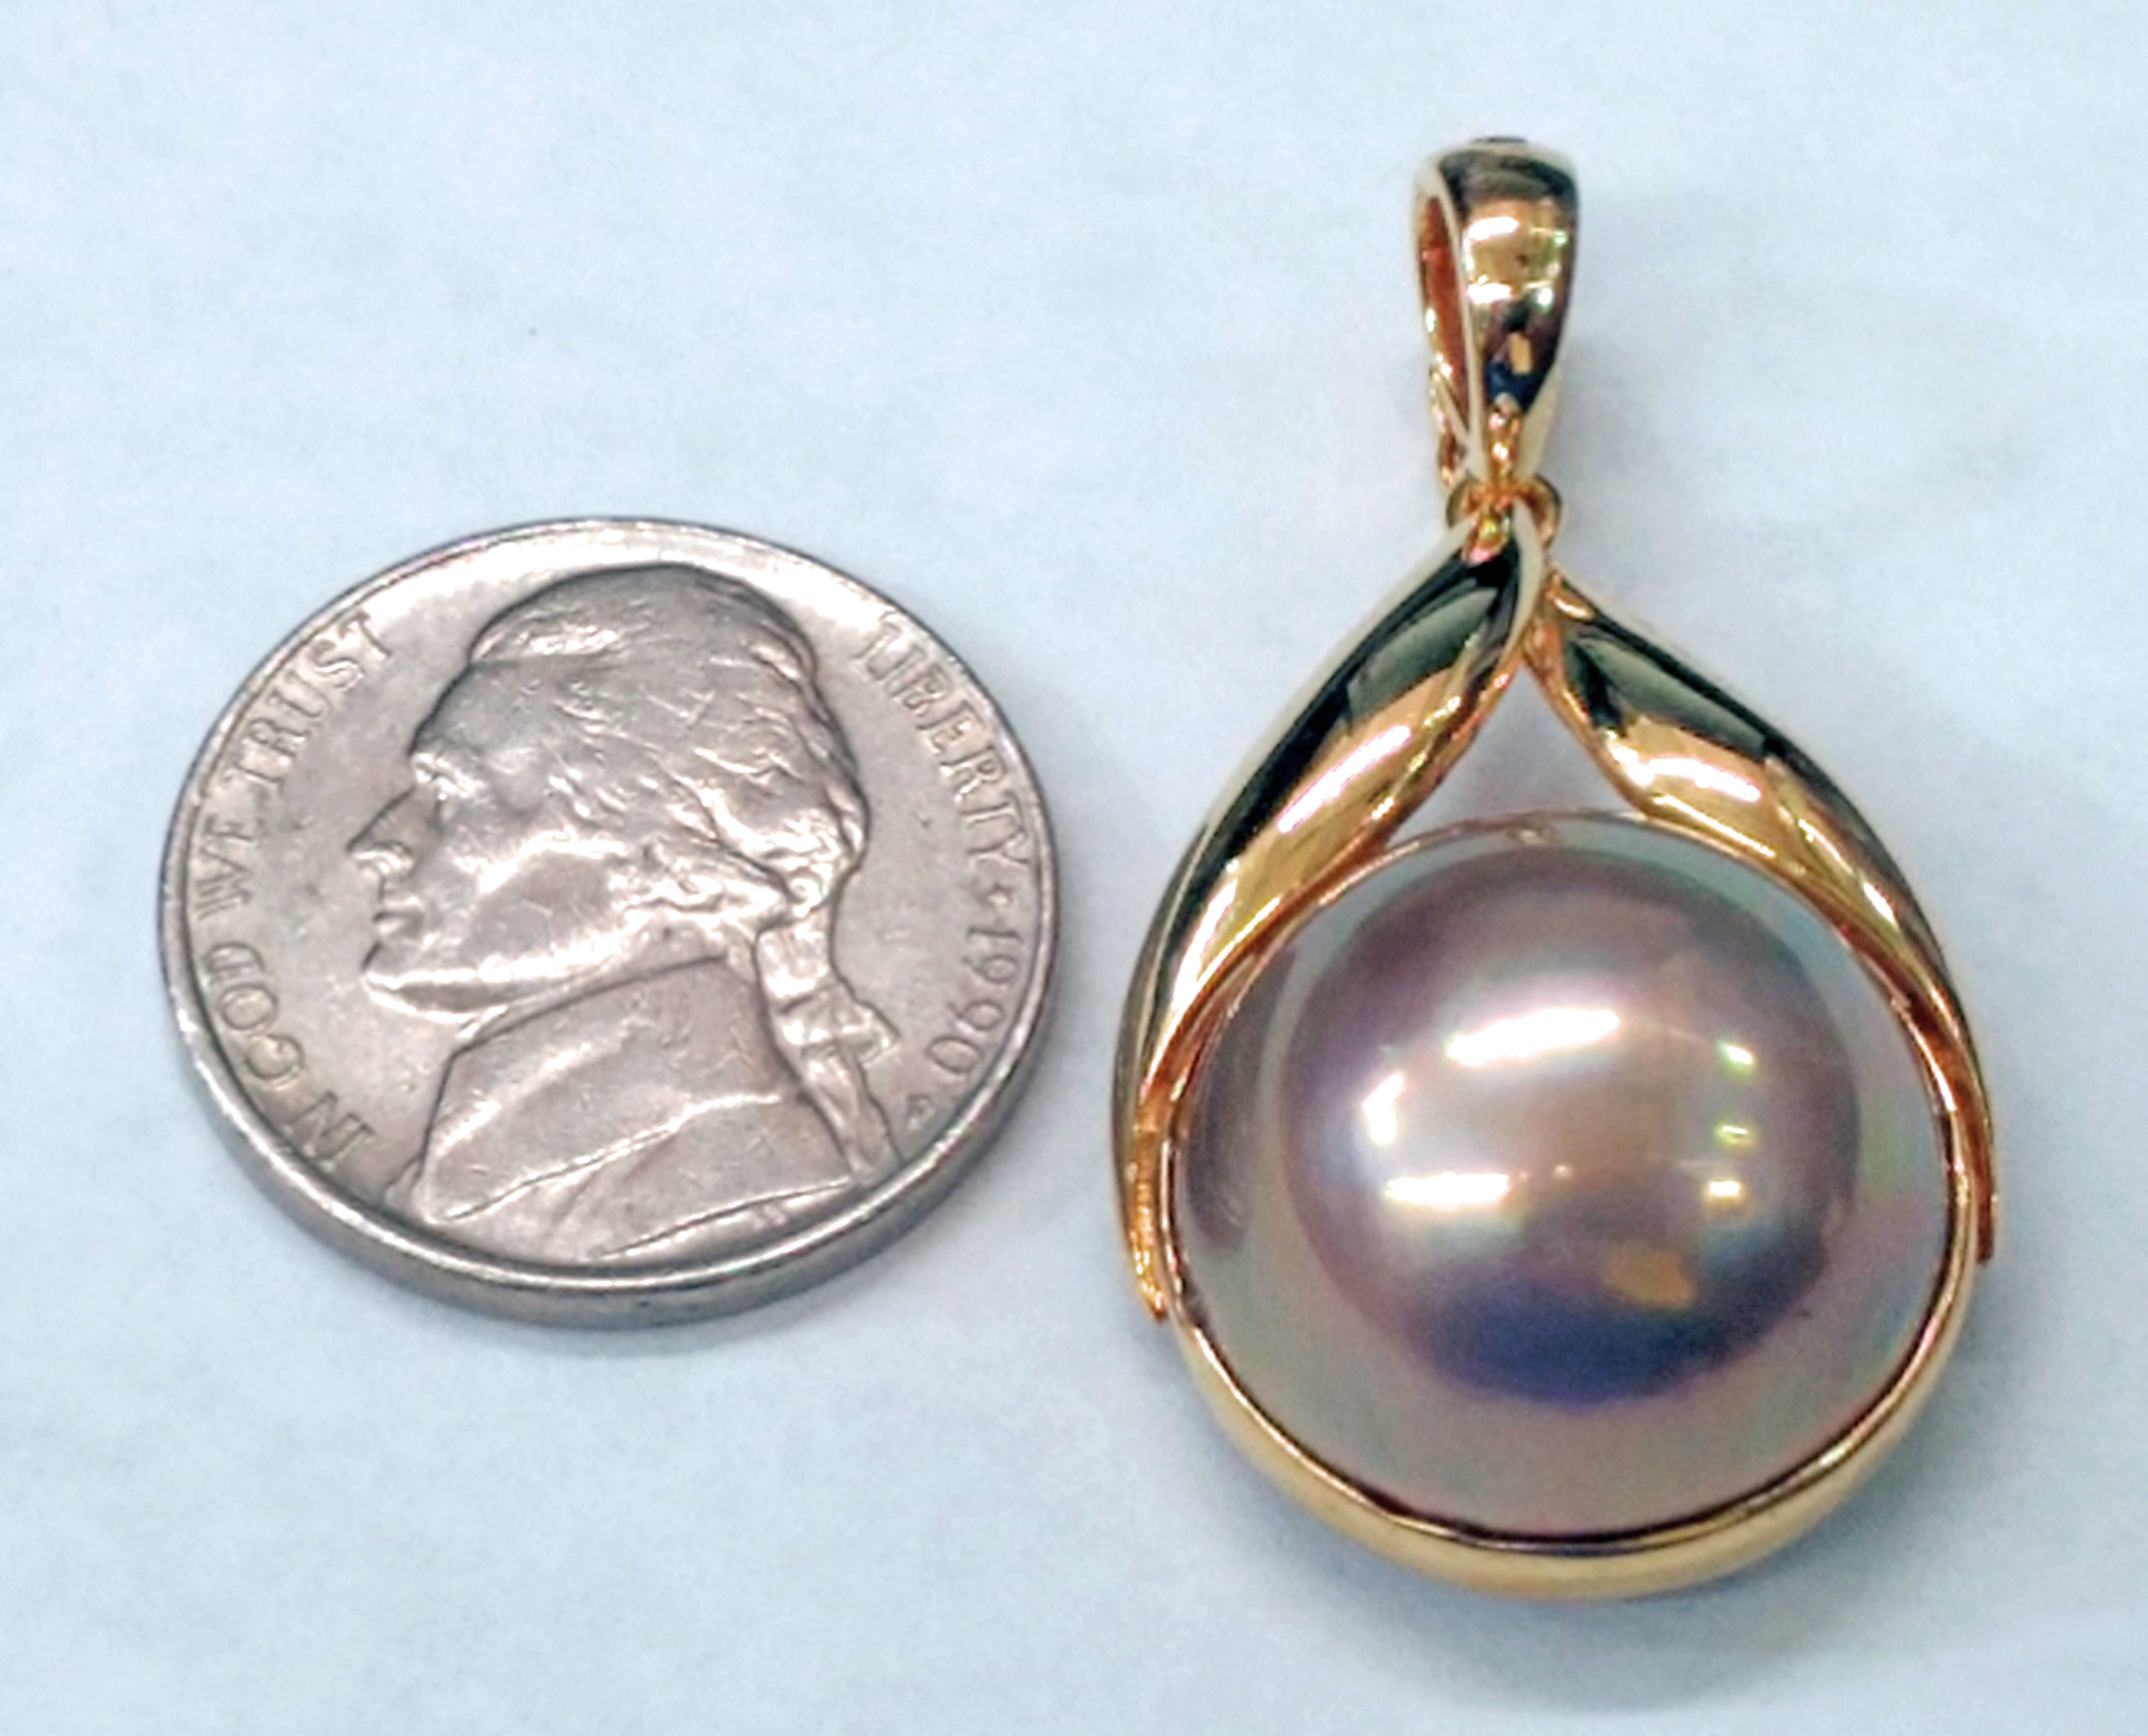 17.5mm Lavender Mabe Pearl Set in 14kt Yellow Gold Pendant with Enhancer